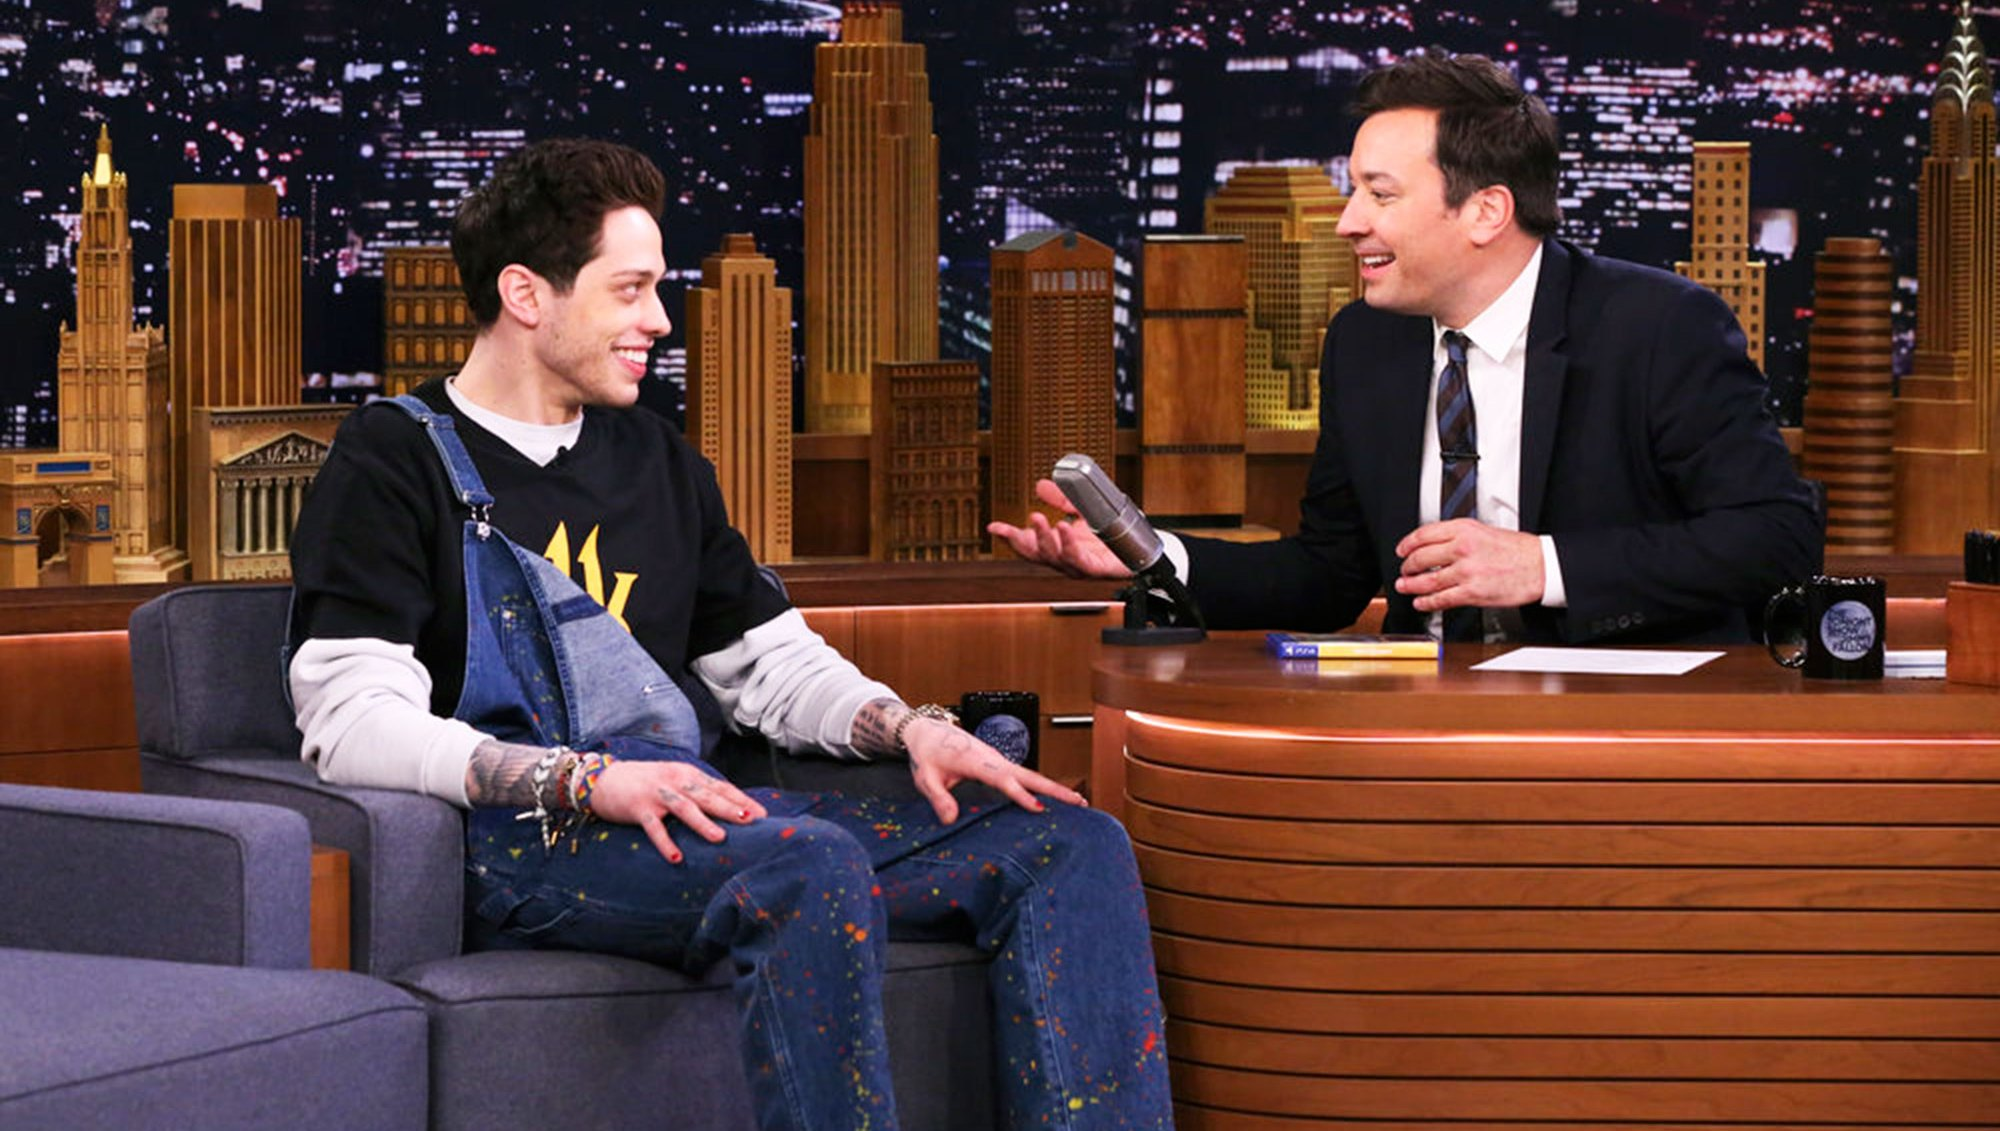 Pete Davidson The Tonight Show Starring Jimmy Fallon Lives With His Mom Has Crush on Video Game Character: 'I'm Lonely!'